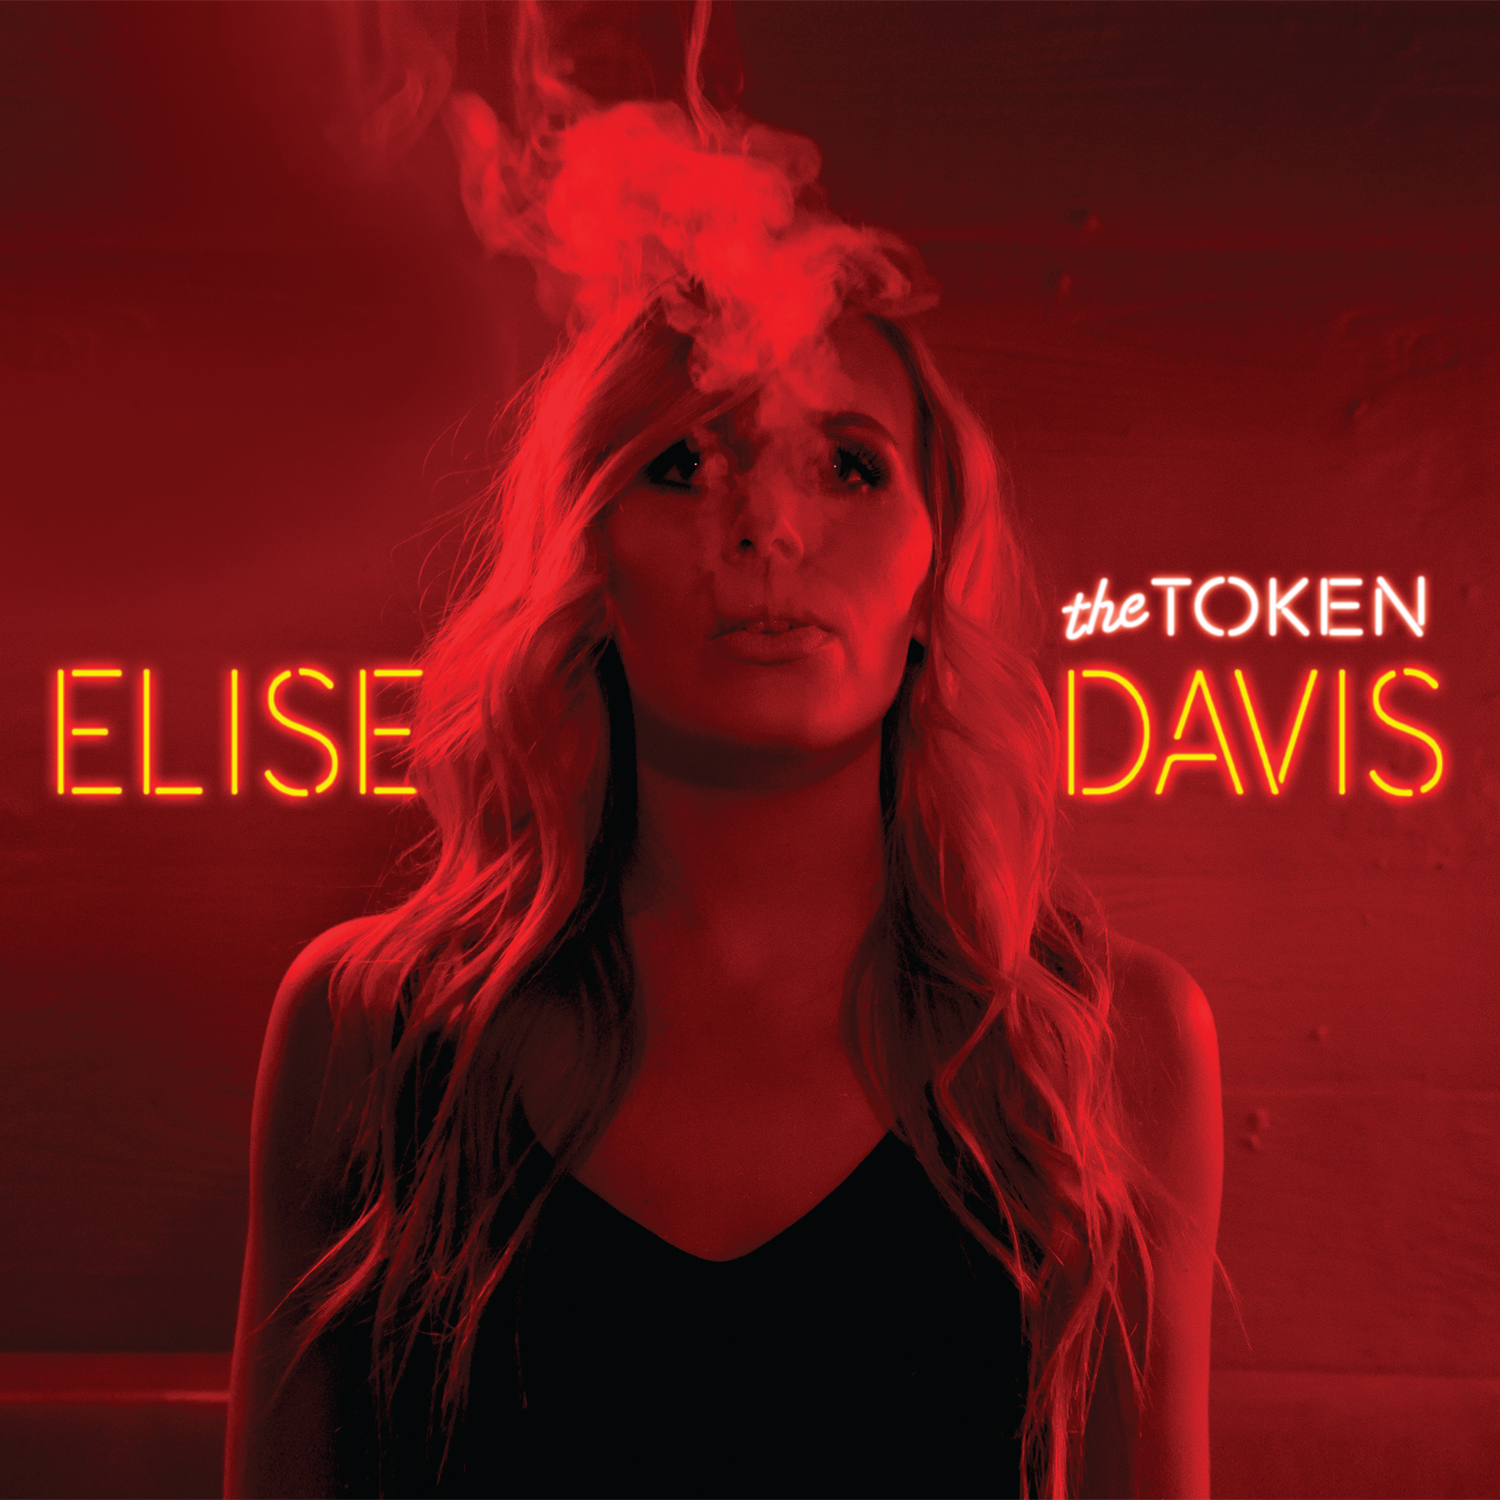 Elise Davis The Token Cover 1500x1500 copy.jpg